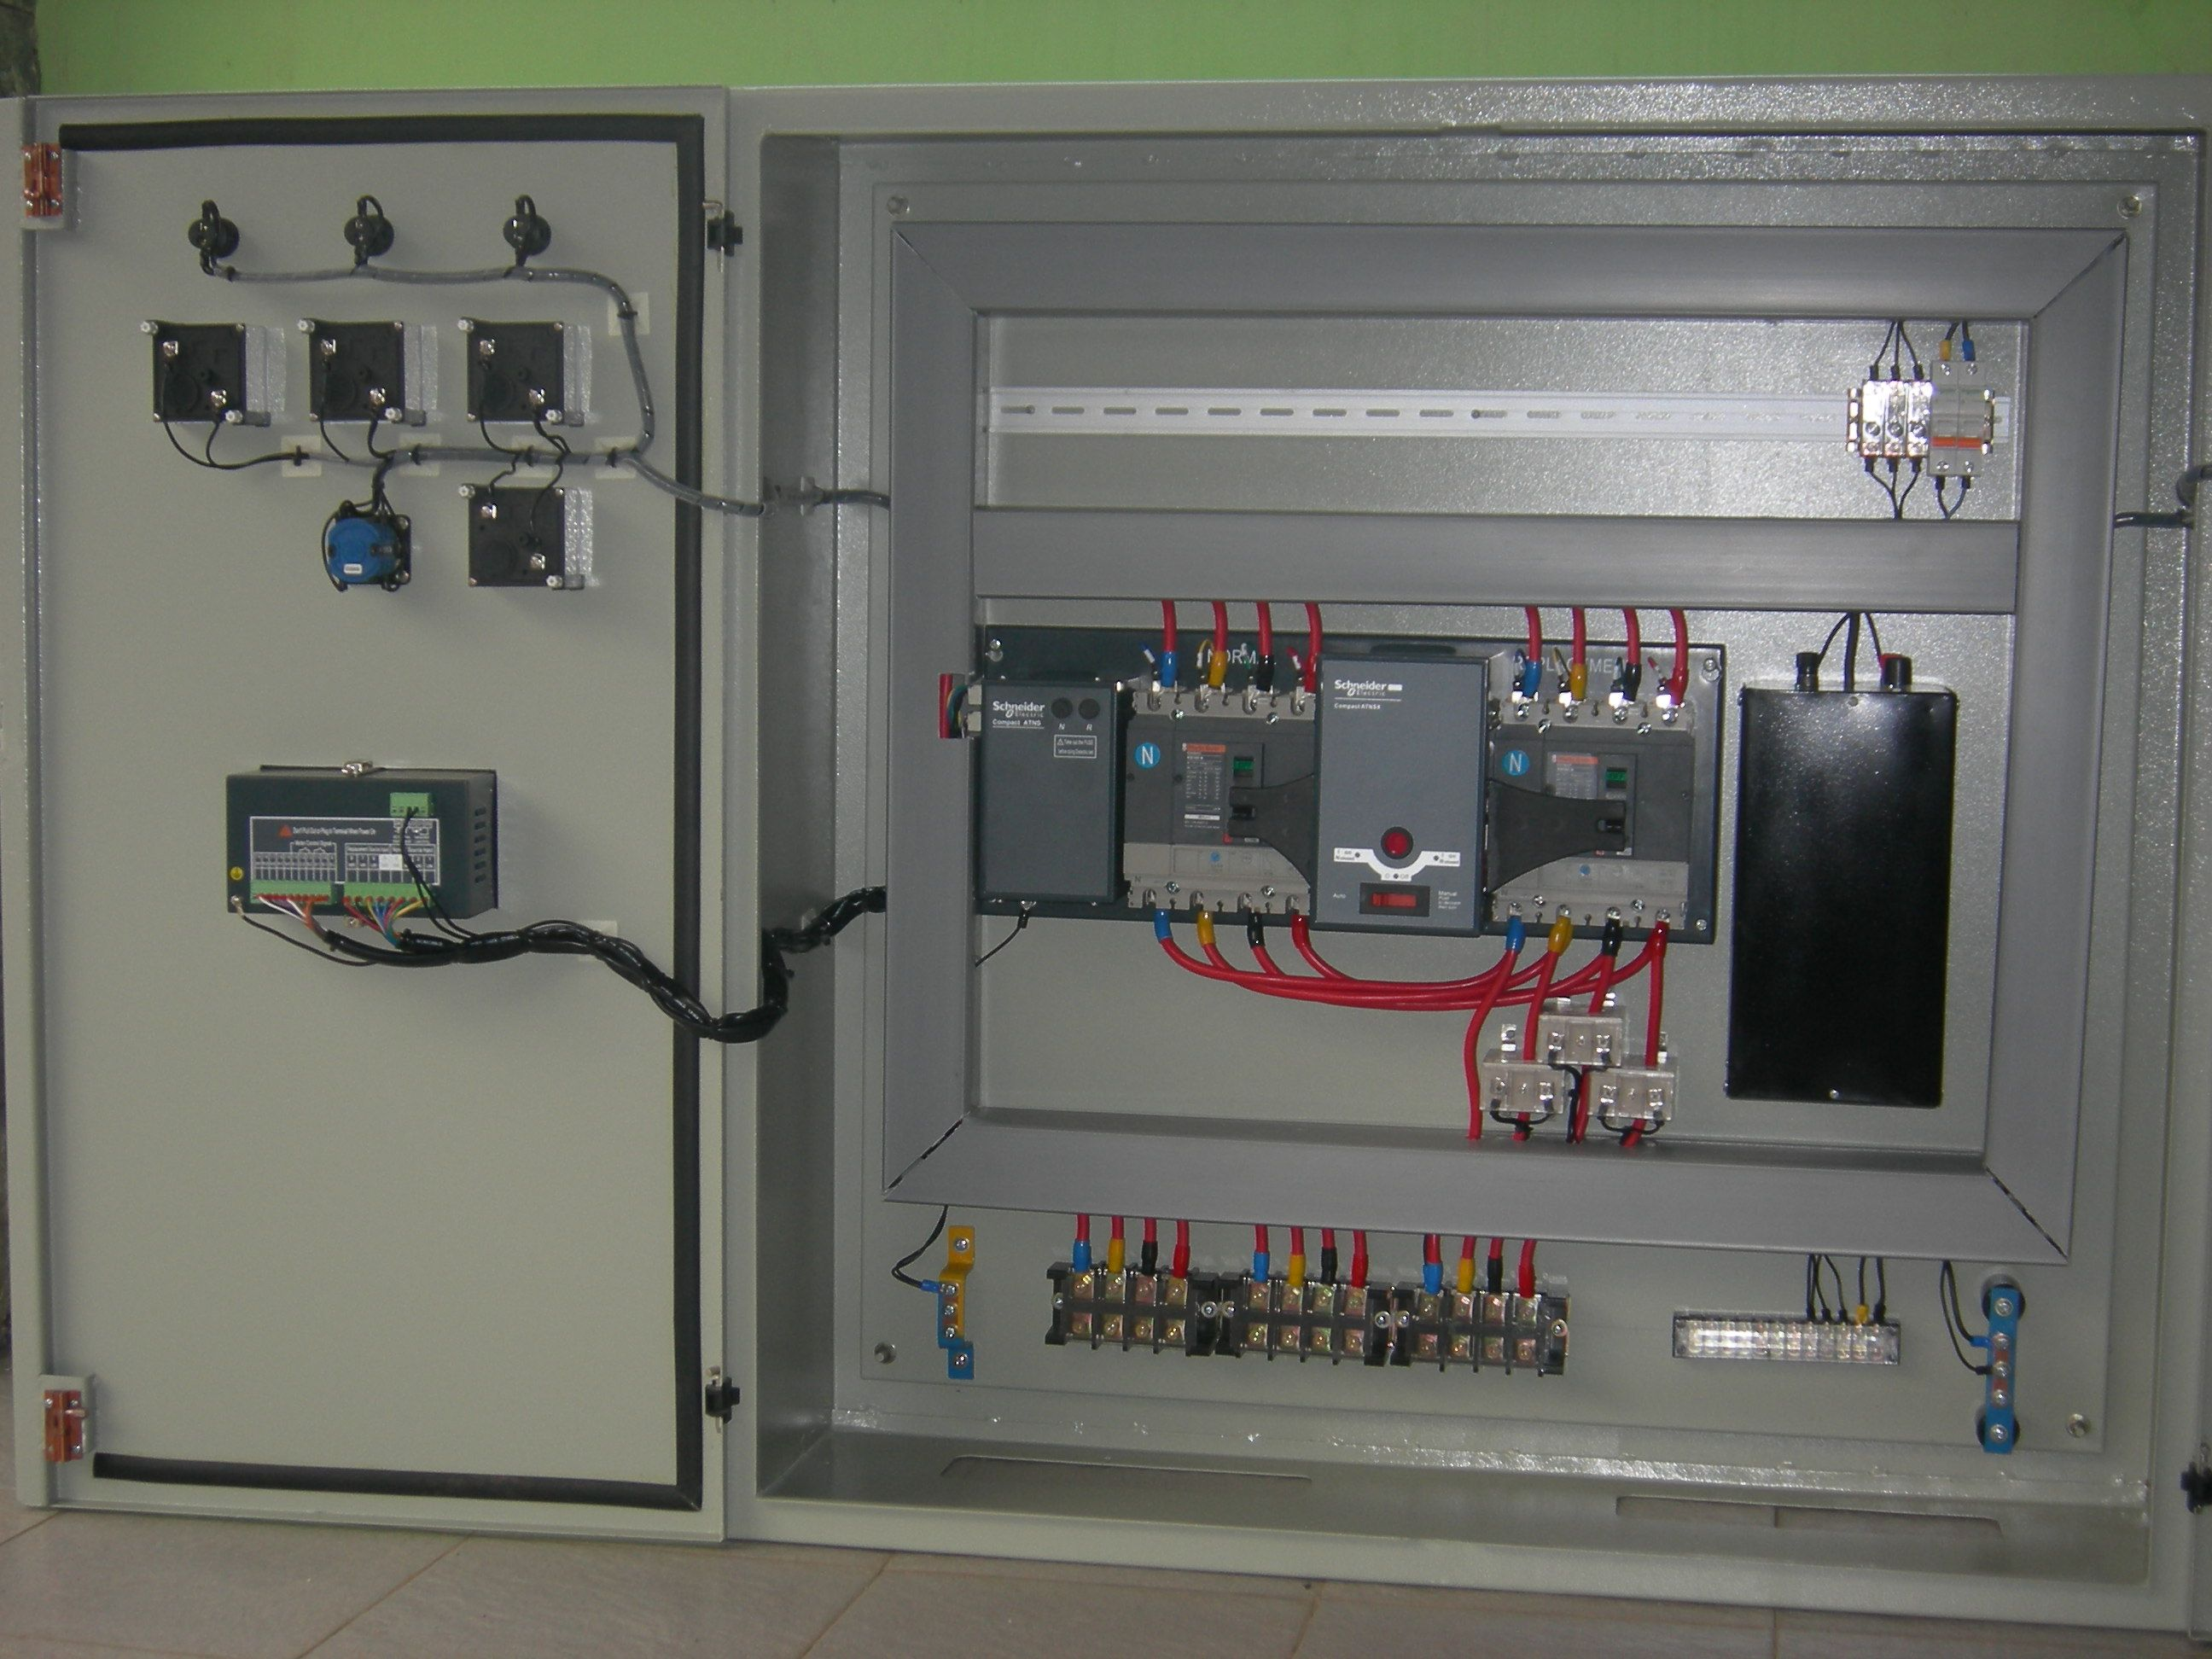 Pin di 0812-2074-3690 Jasa Instalasi Listrik dan Panel Wiring Panel Listrik on roof panel, pump panel, switch panel, fuse panel, drywall panel, glass panel, maintenance panel,